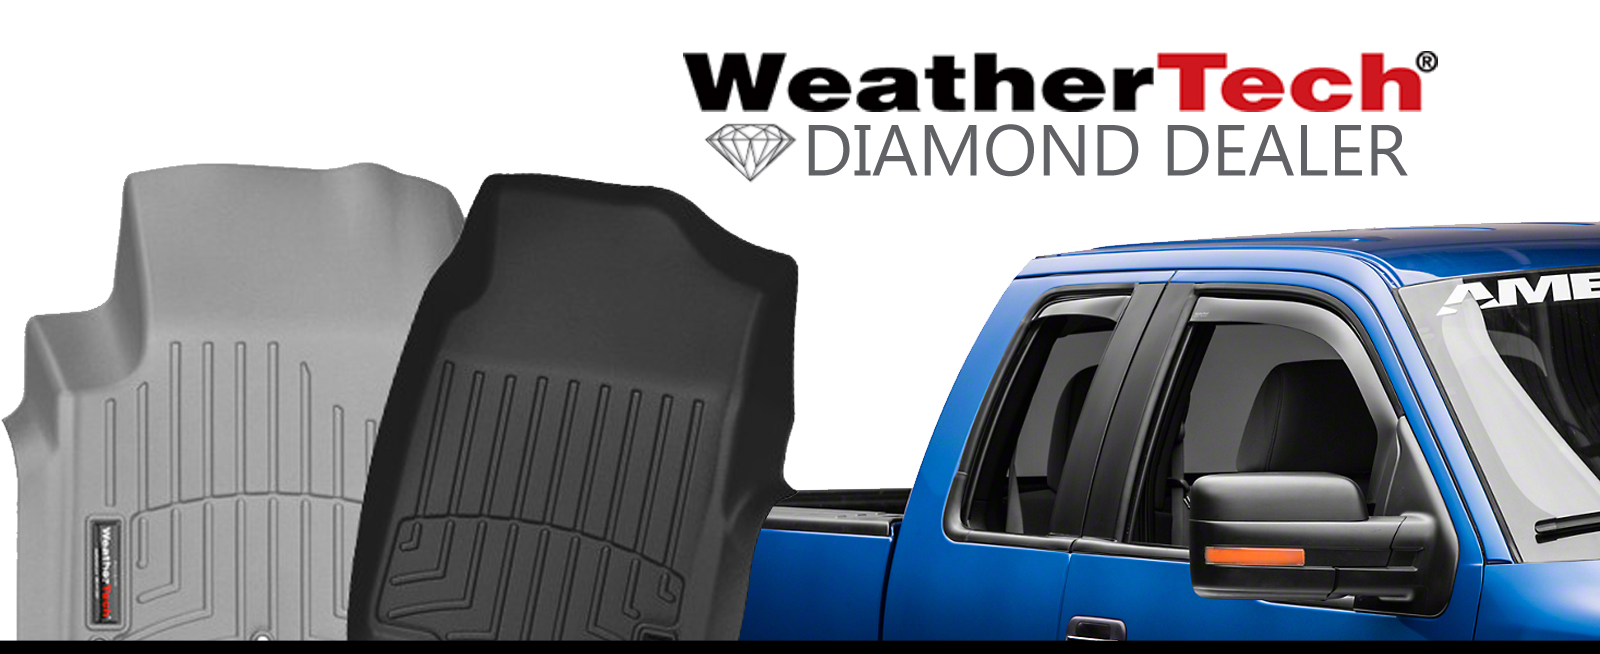 WeatherTech Diamond Dealer